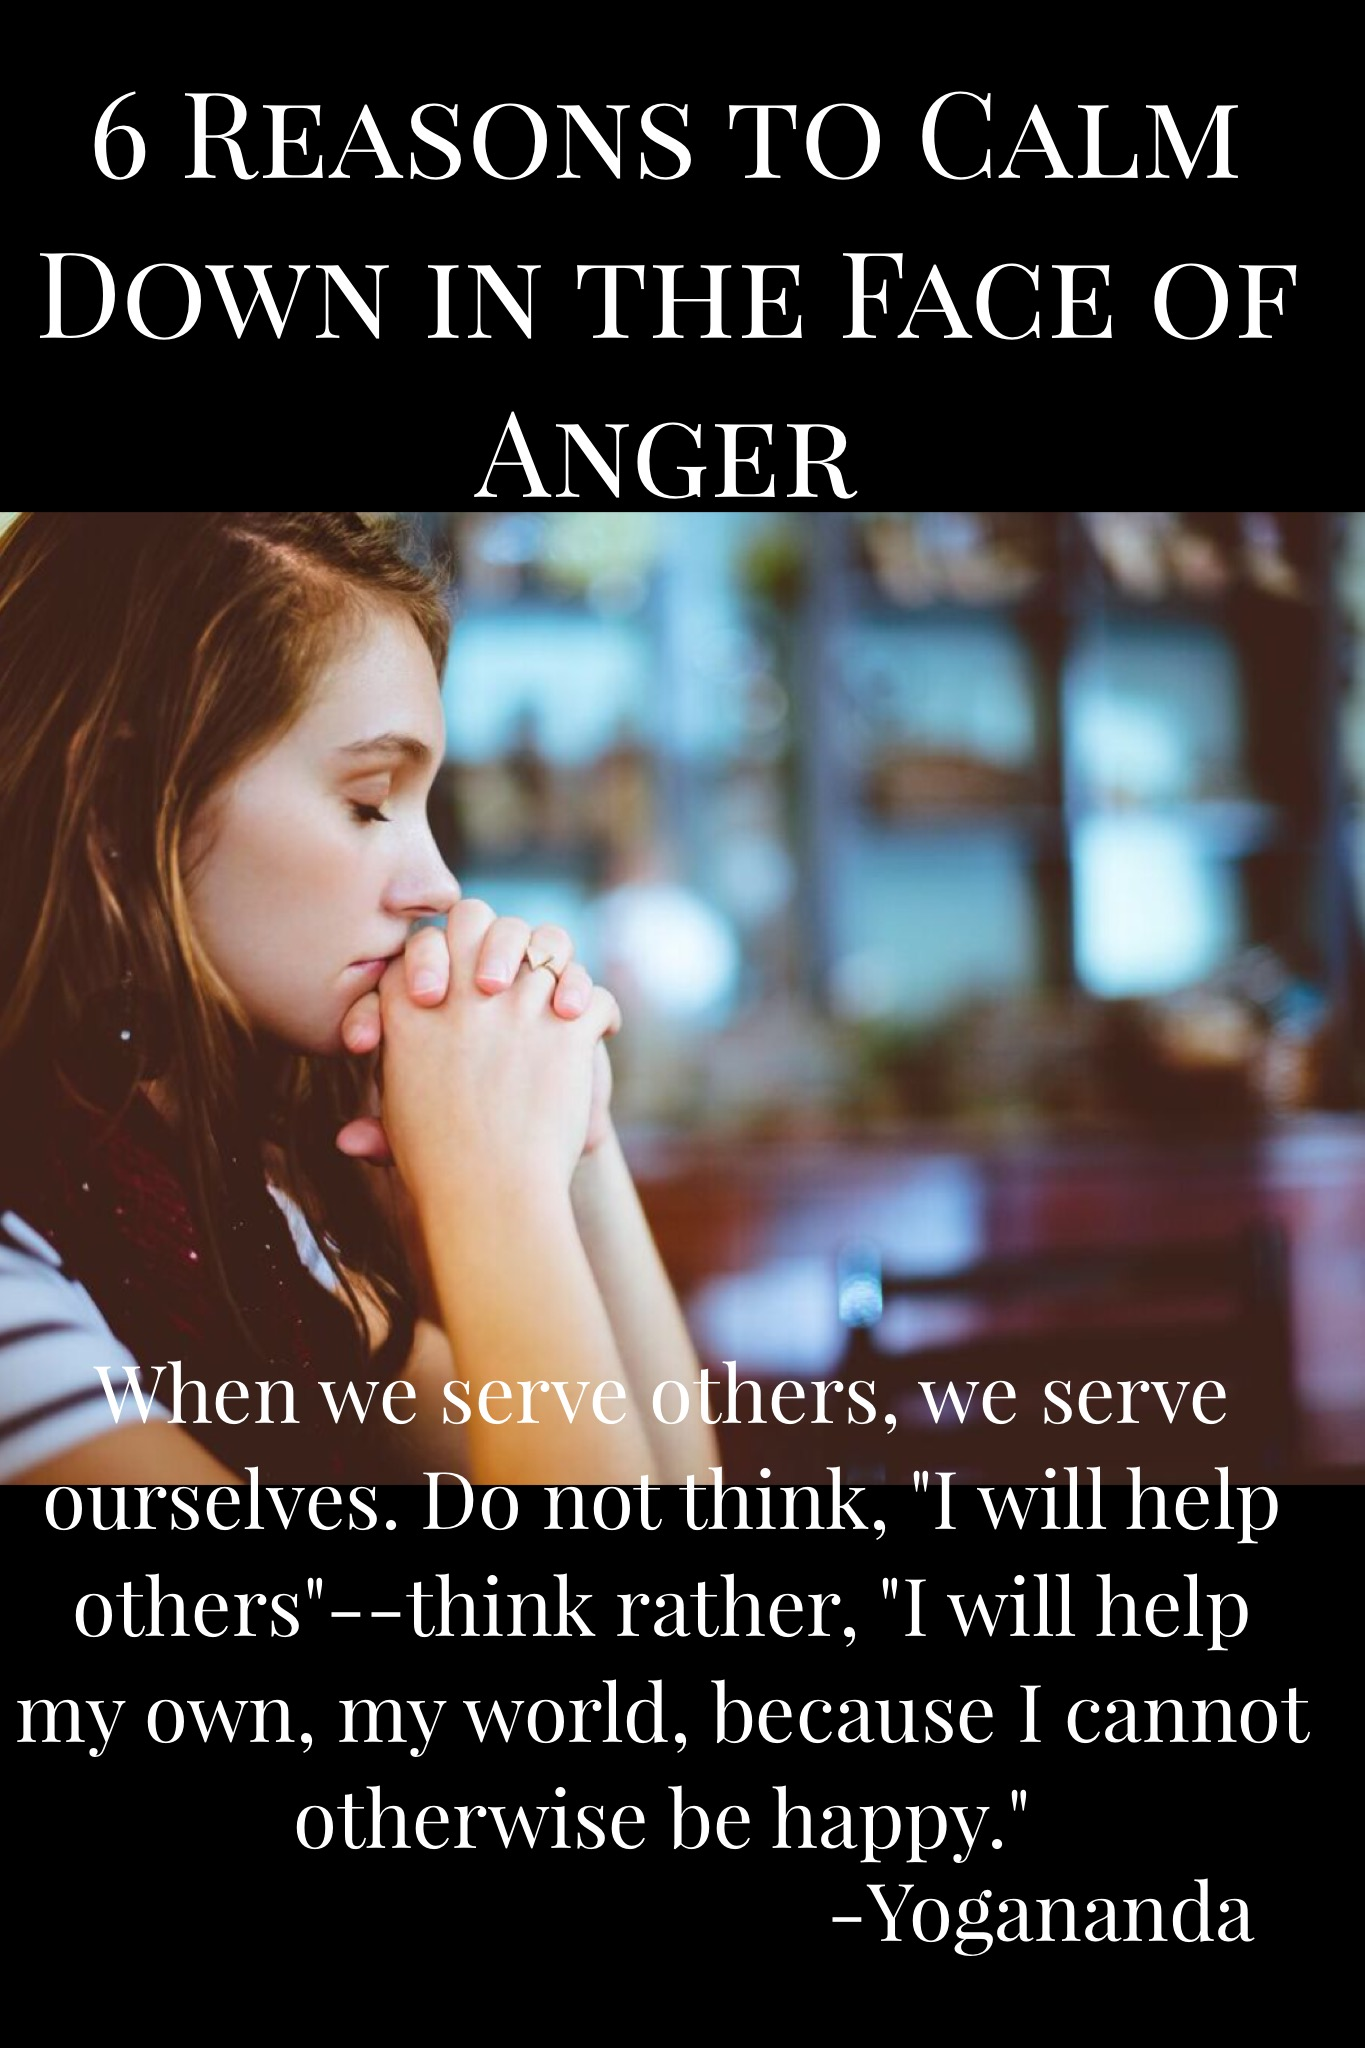 6 Reasons to Calm Down in the face of Anger- www.shelbyathome.com Inspiration based in Family, God, and Space to Run